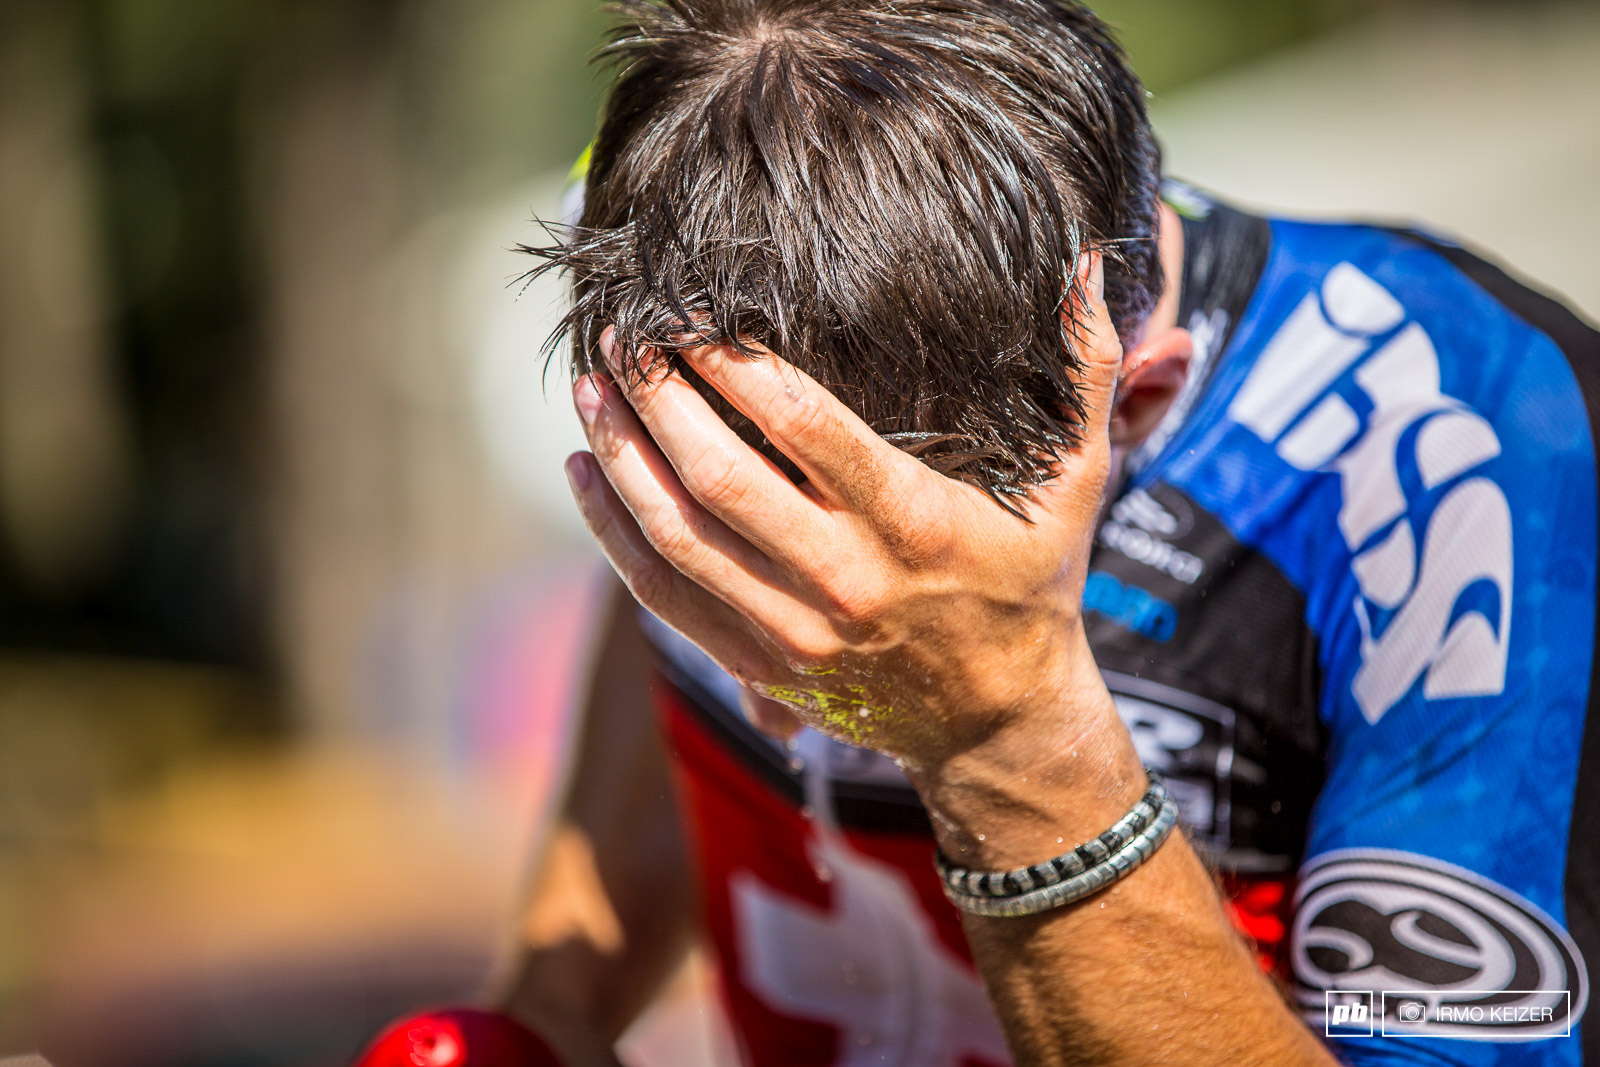 Tremendous heat and a course which was physically demanding resulted in exhausted riders.